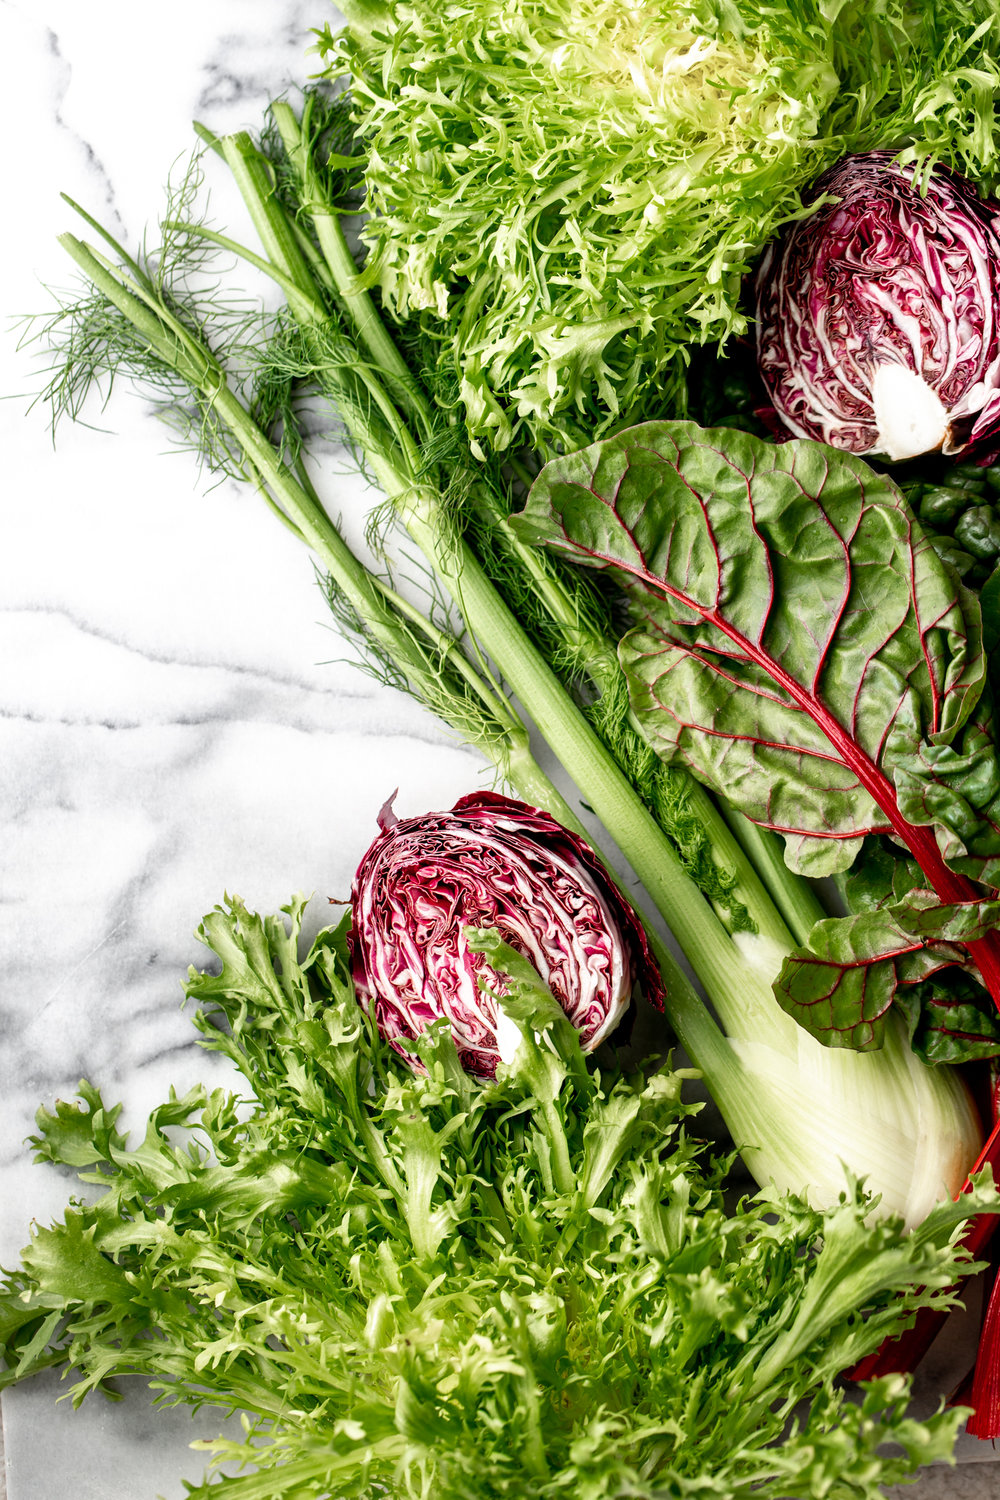 mesclun greens, radicchio, fennel, chard and frisee